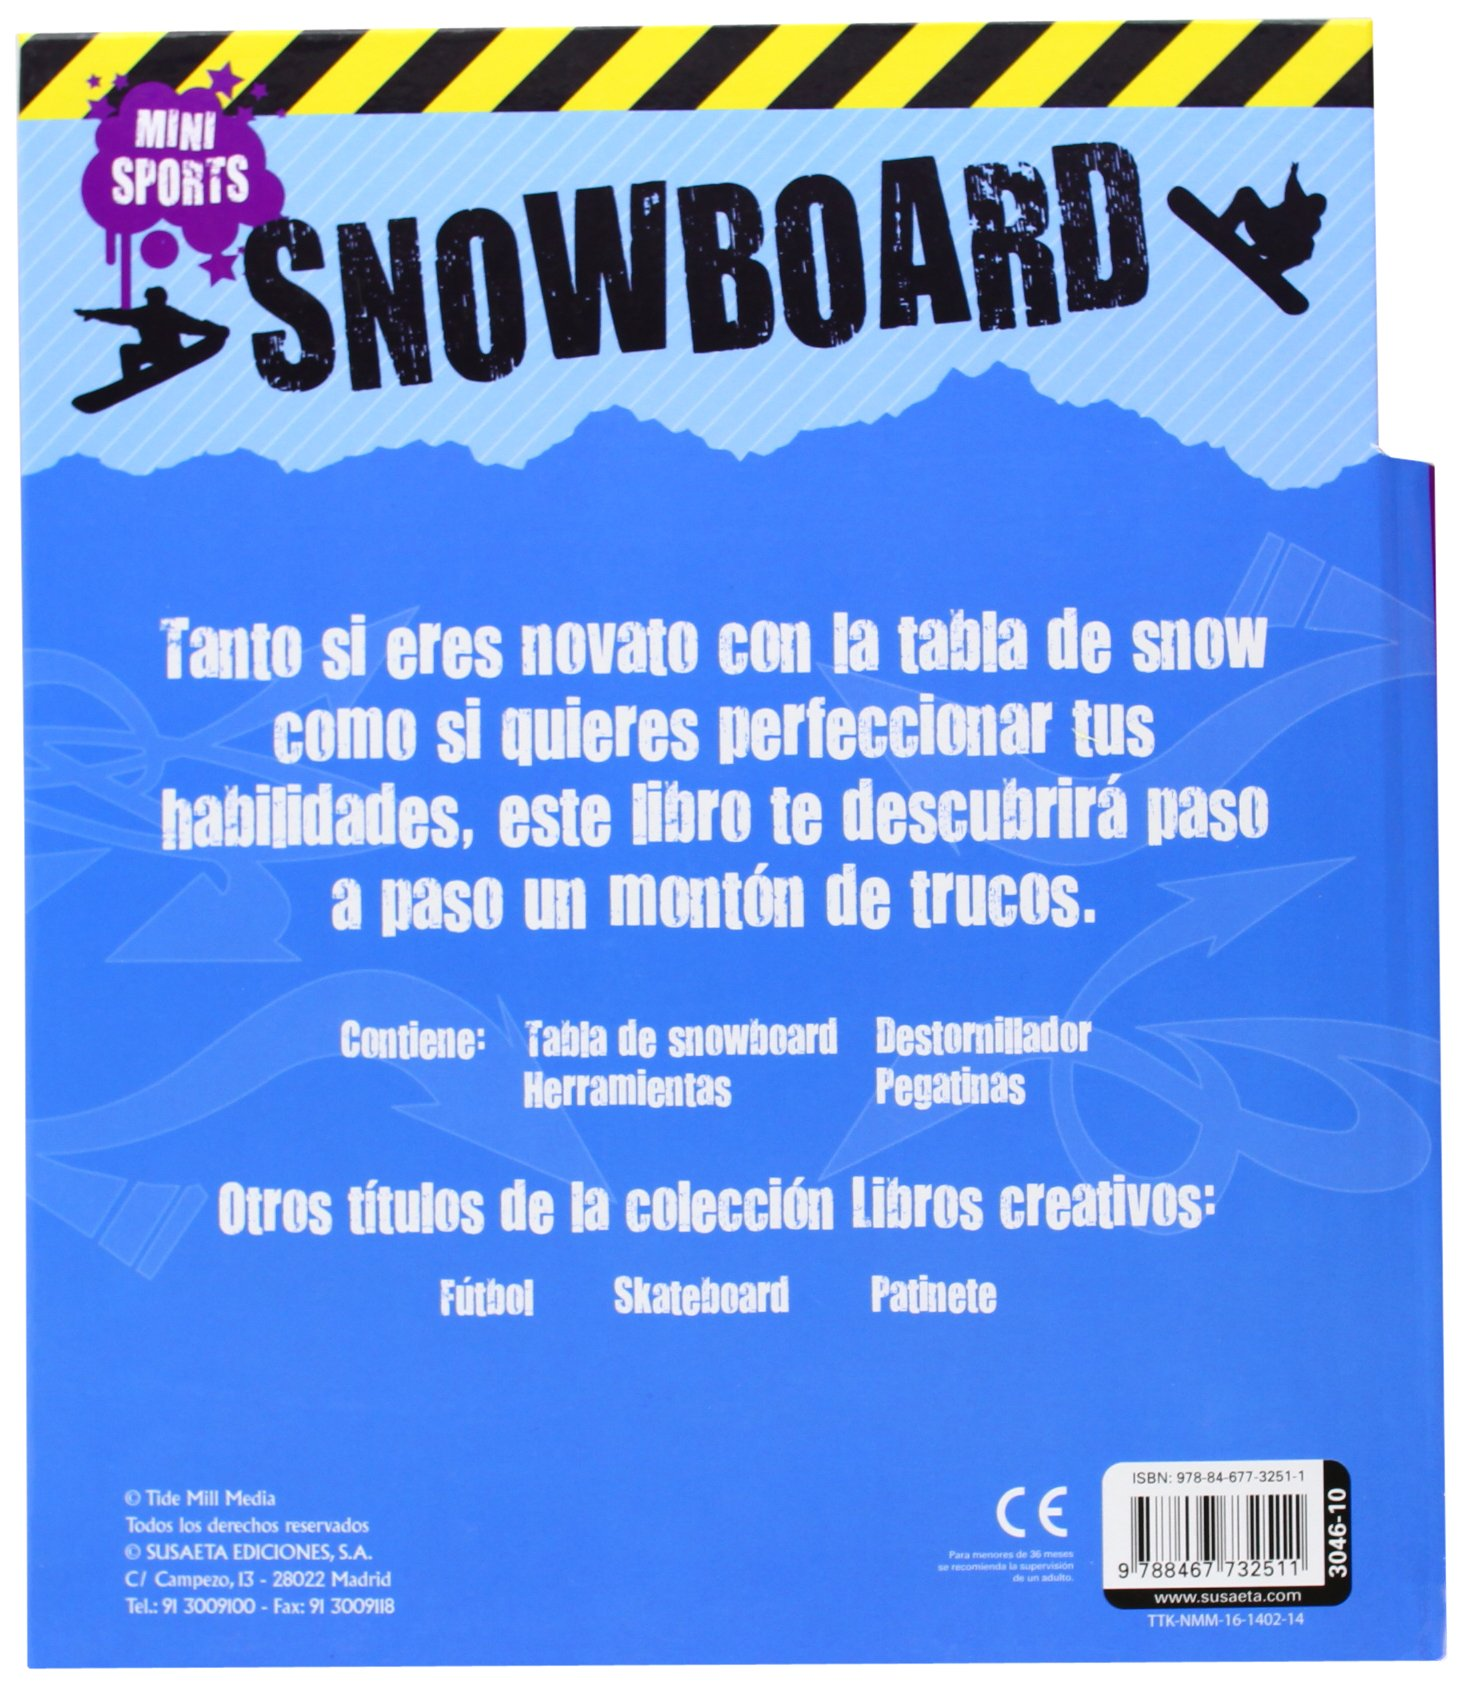 Snowboard: 9788467732511: Amazon.com: Books